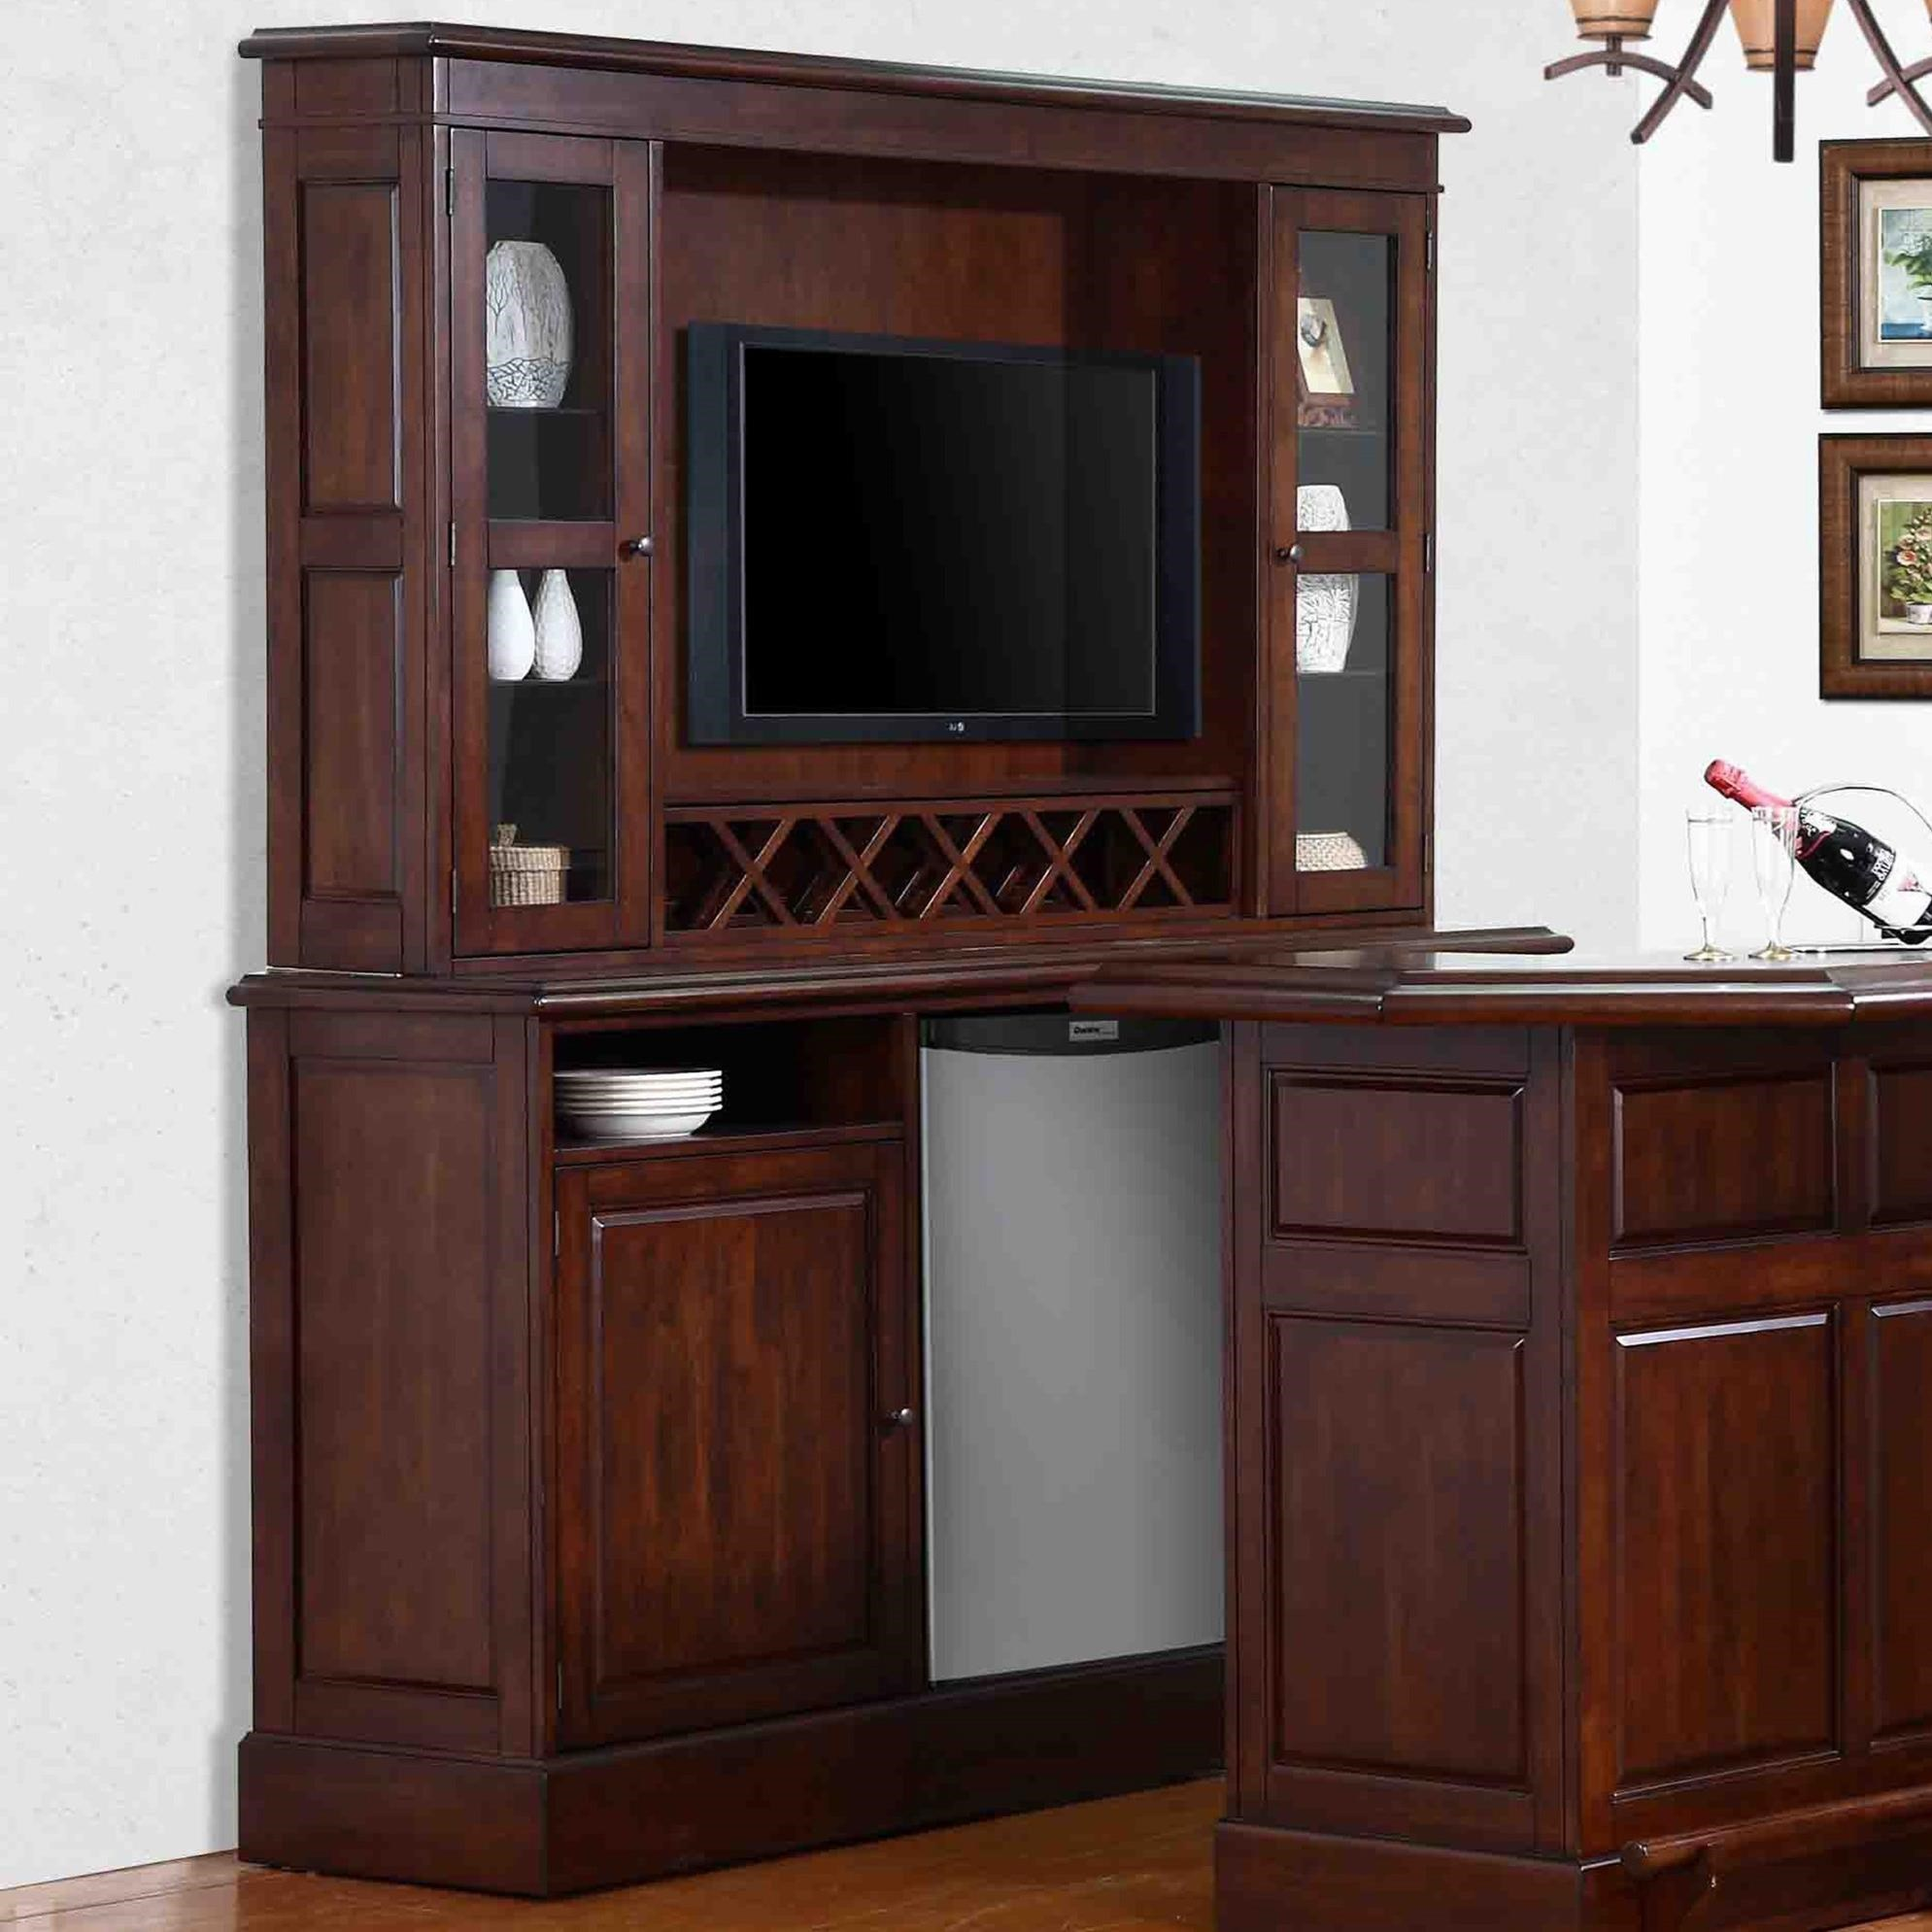 Charmant E.C.I. Furniture Belvedere 0411 Belvedere Back Bar With Hutch